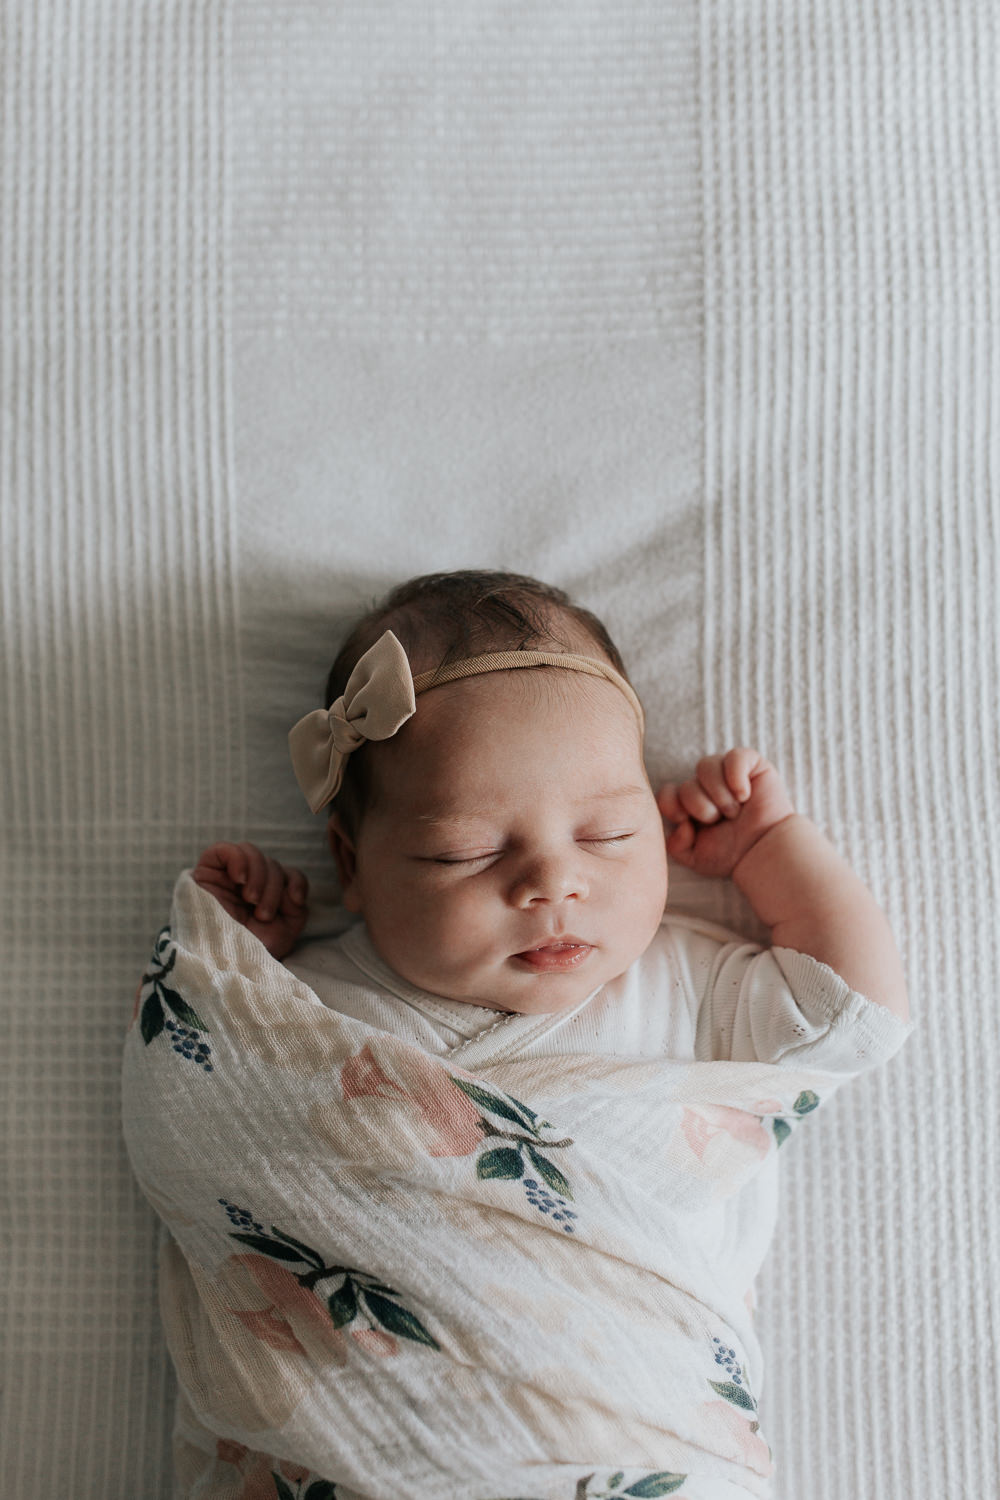 2 week old baby girl with dark hair wrapped in swaddle with soft pink flowers, wearing bow headband asleep on bed, hands near face - Stouffville In-Home Photography